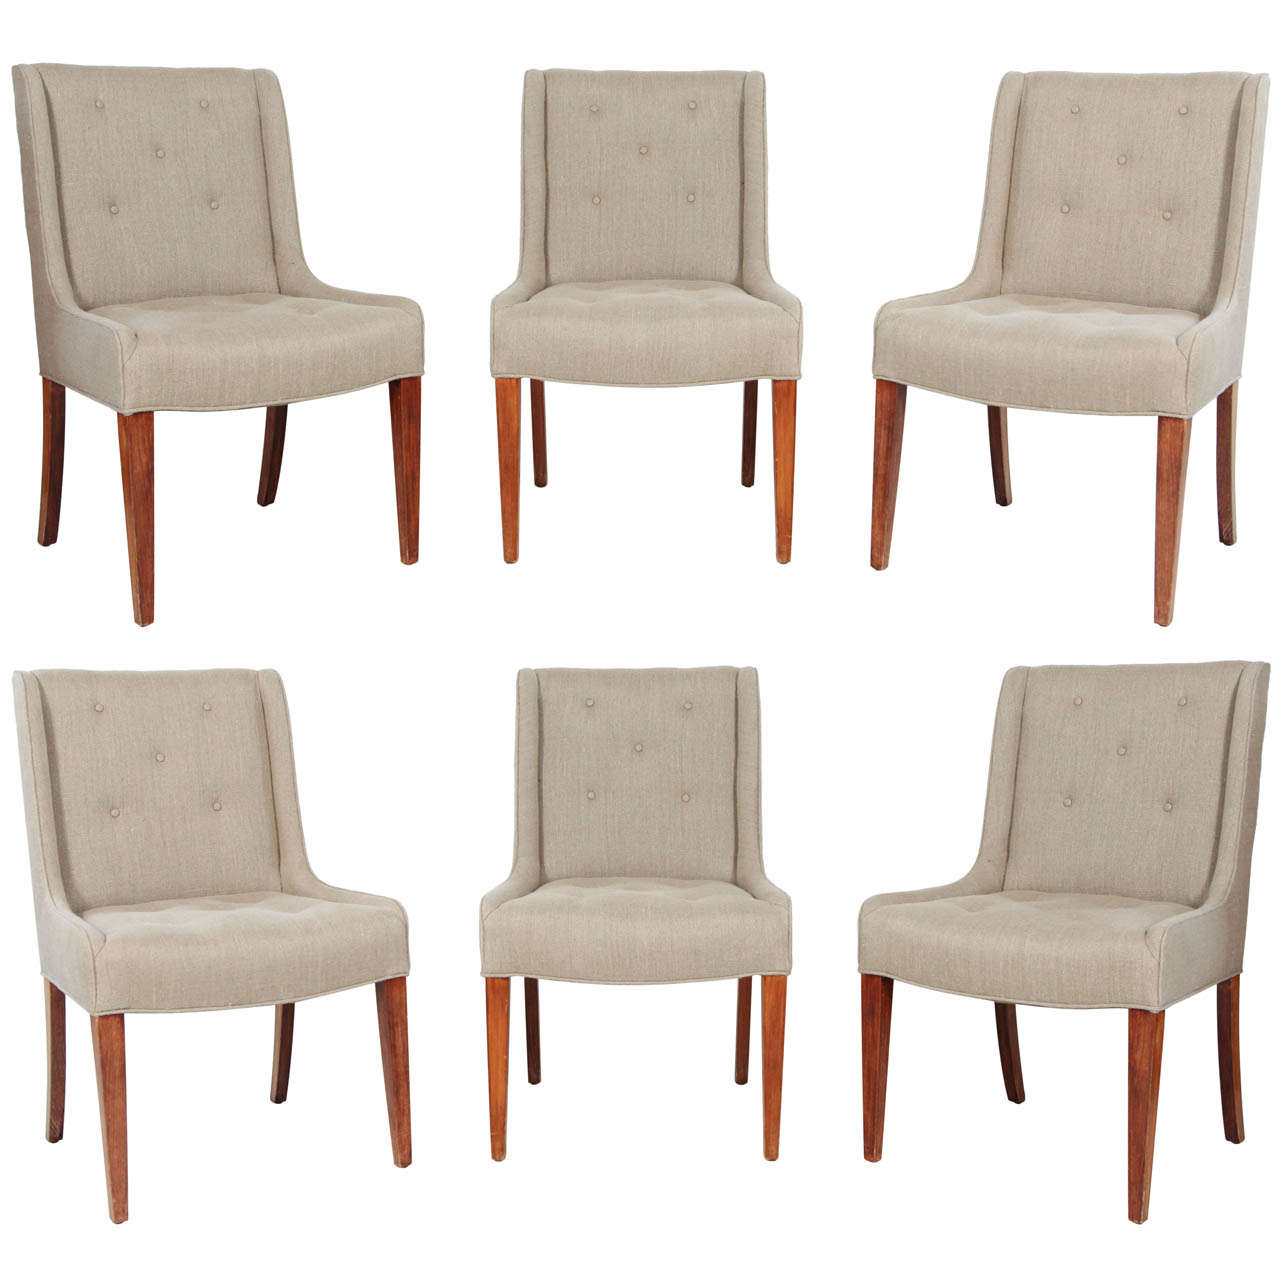 Cheap Dining Chairs | Inexpensive Dining Chairs | Tufted Dining Chair